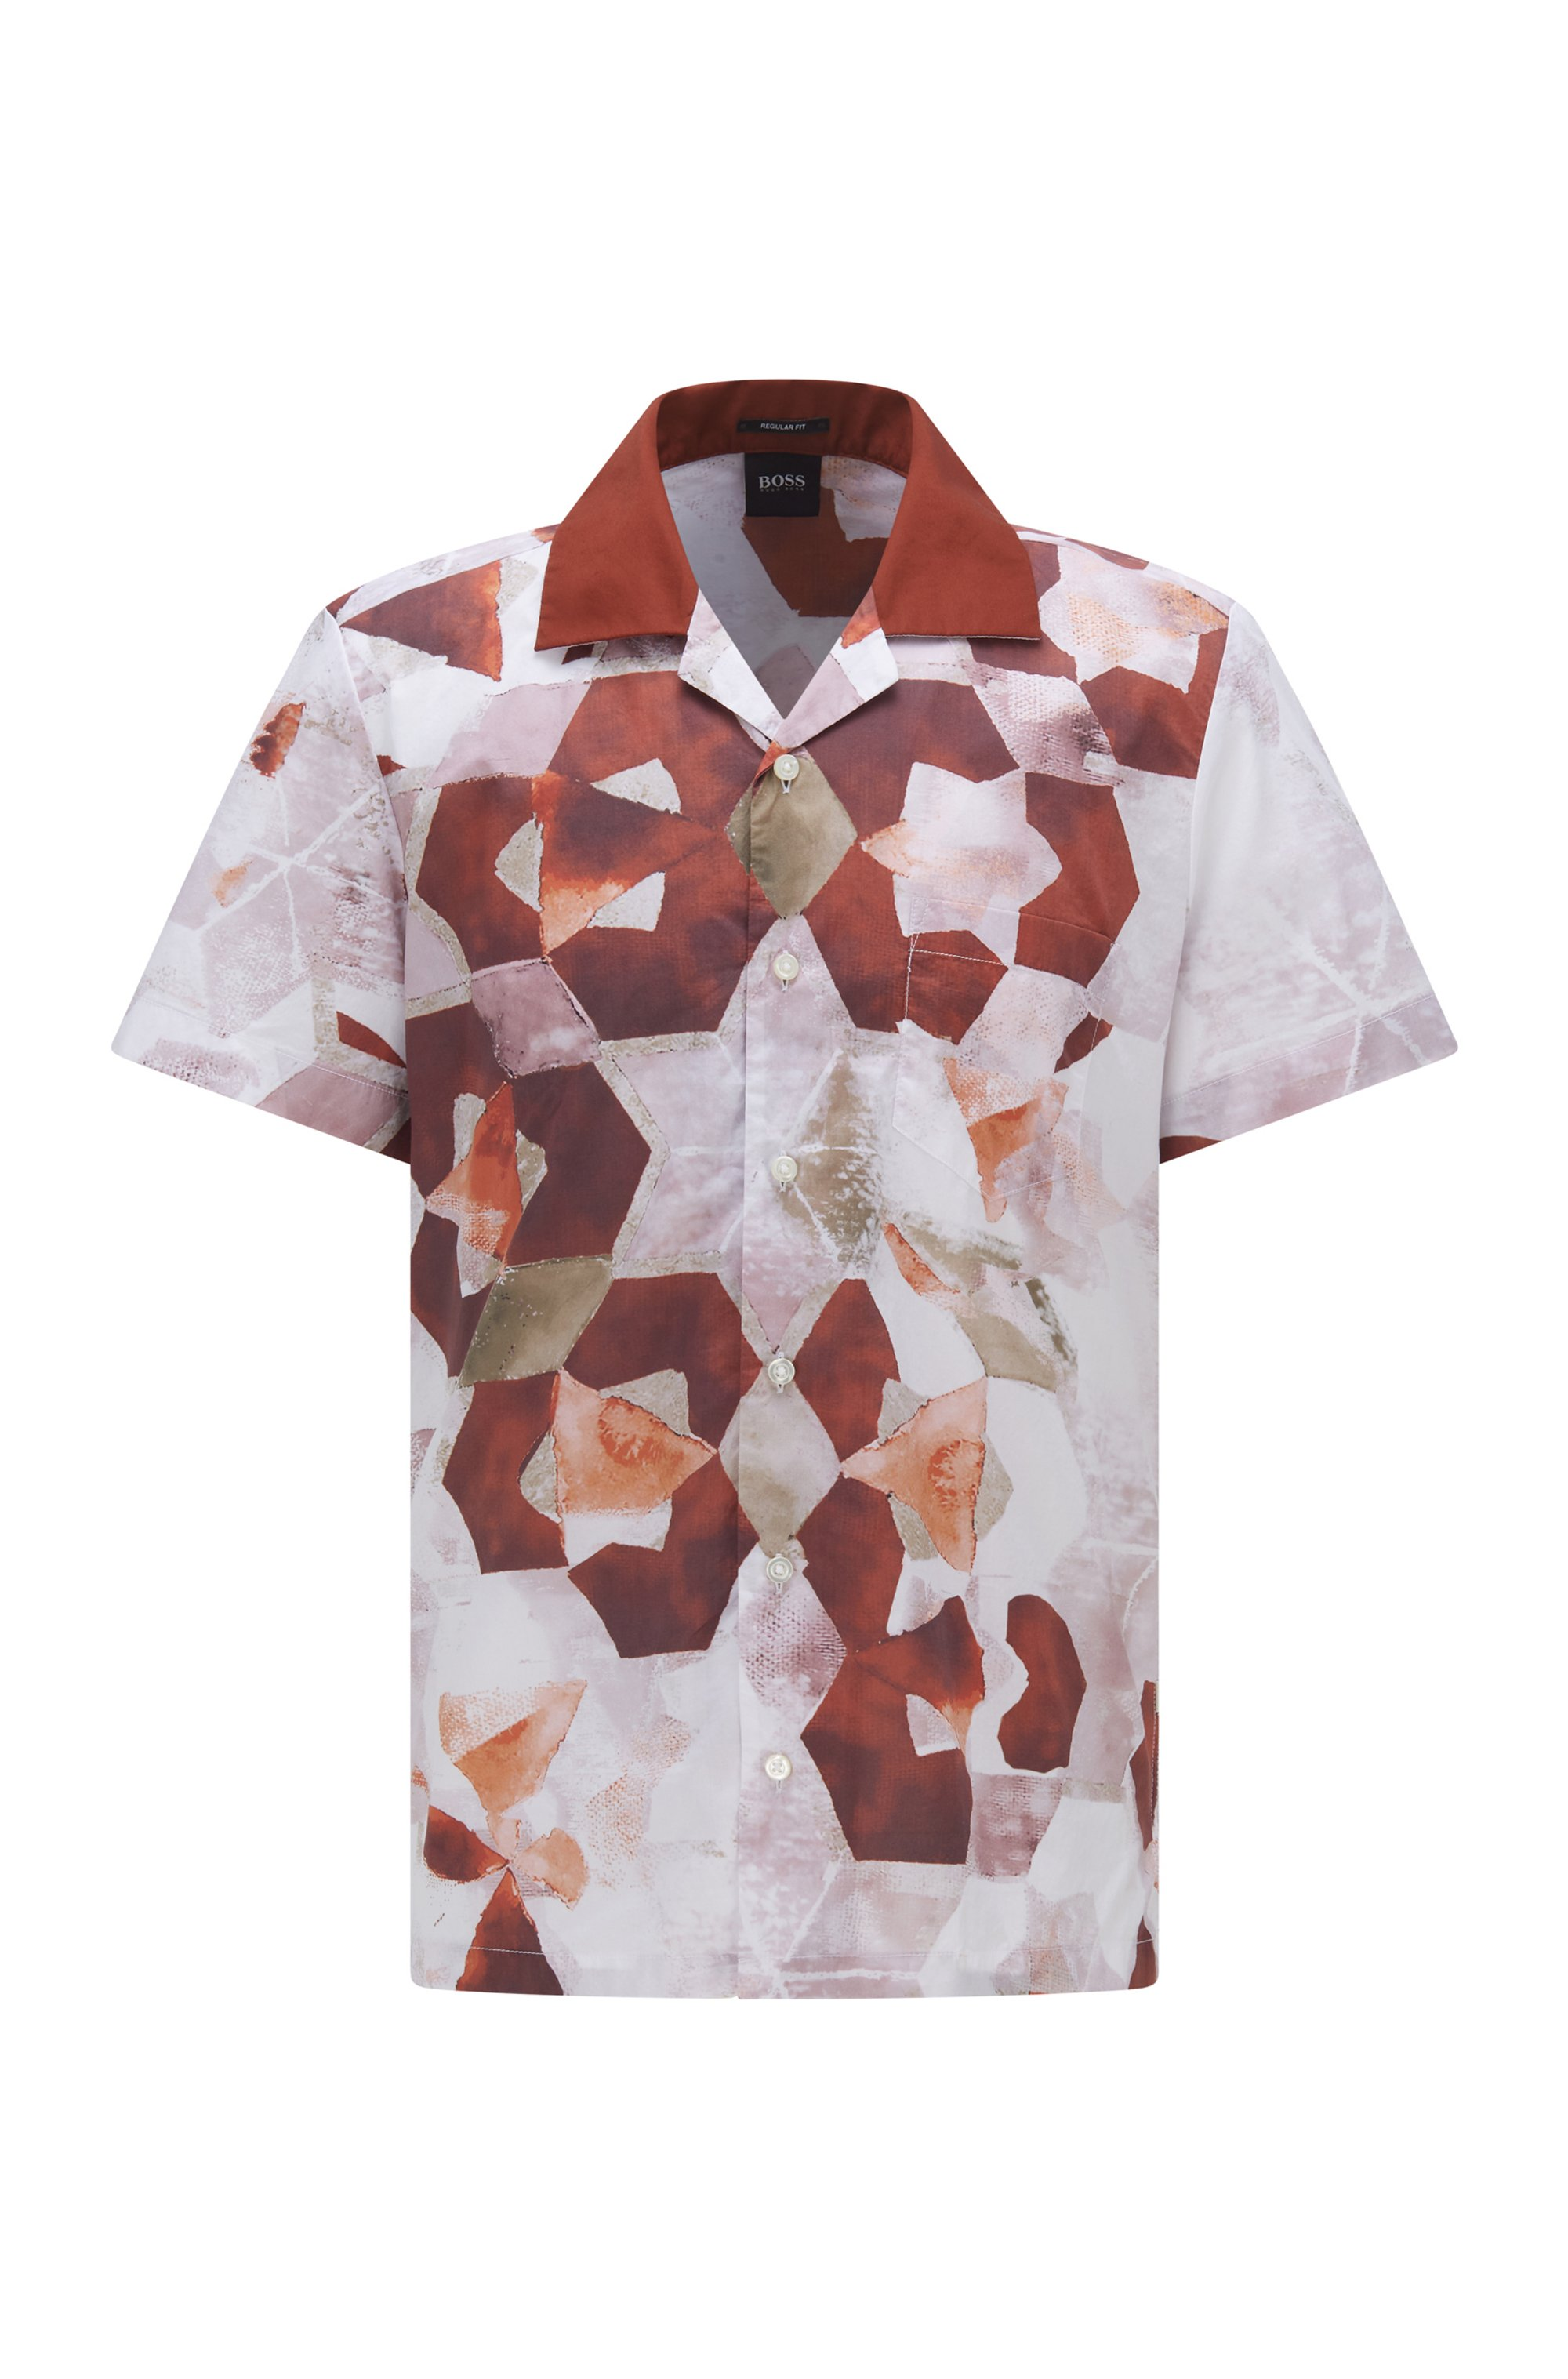 Regular-fit shirt in cotton with new-season print, White Patterned